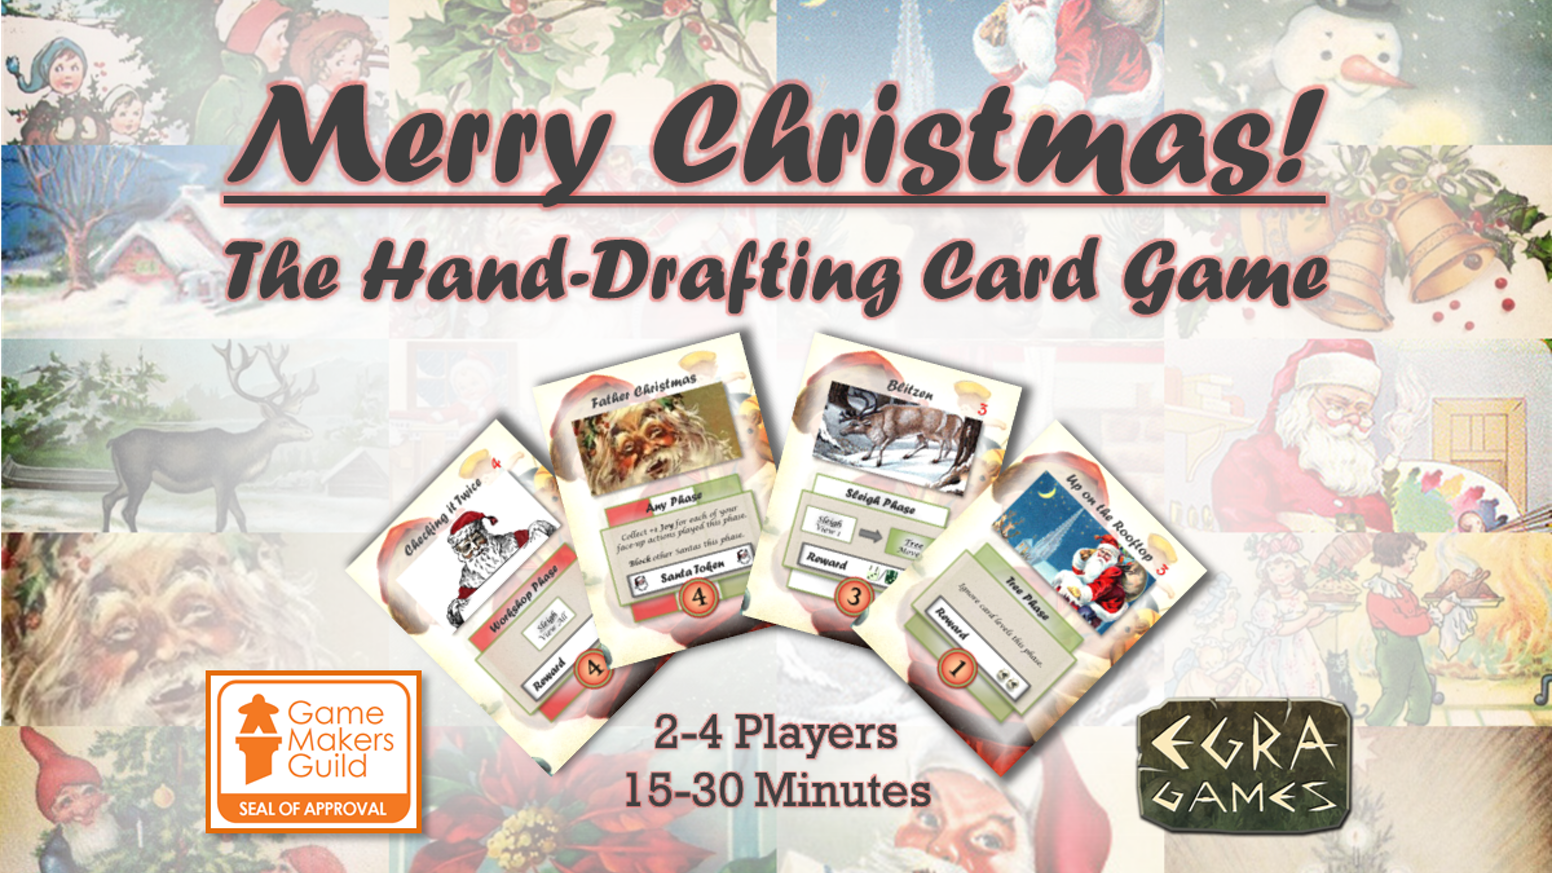 merry christmas the hand drafting card game - Merry Christmas Games